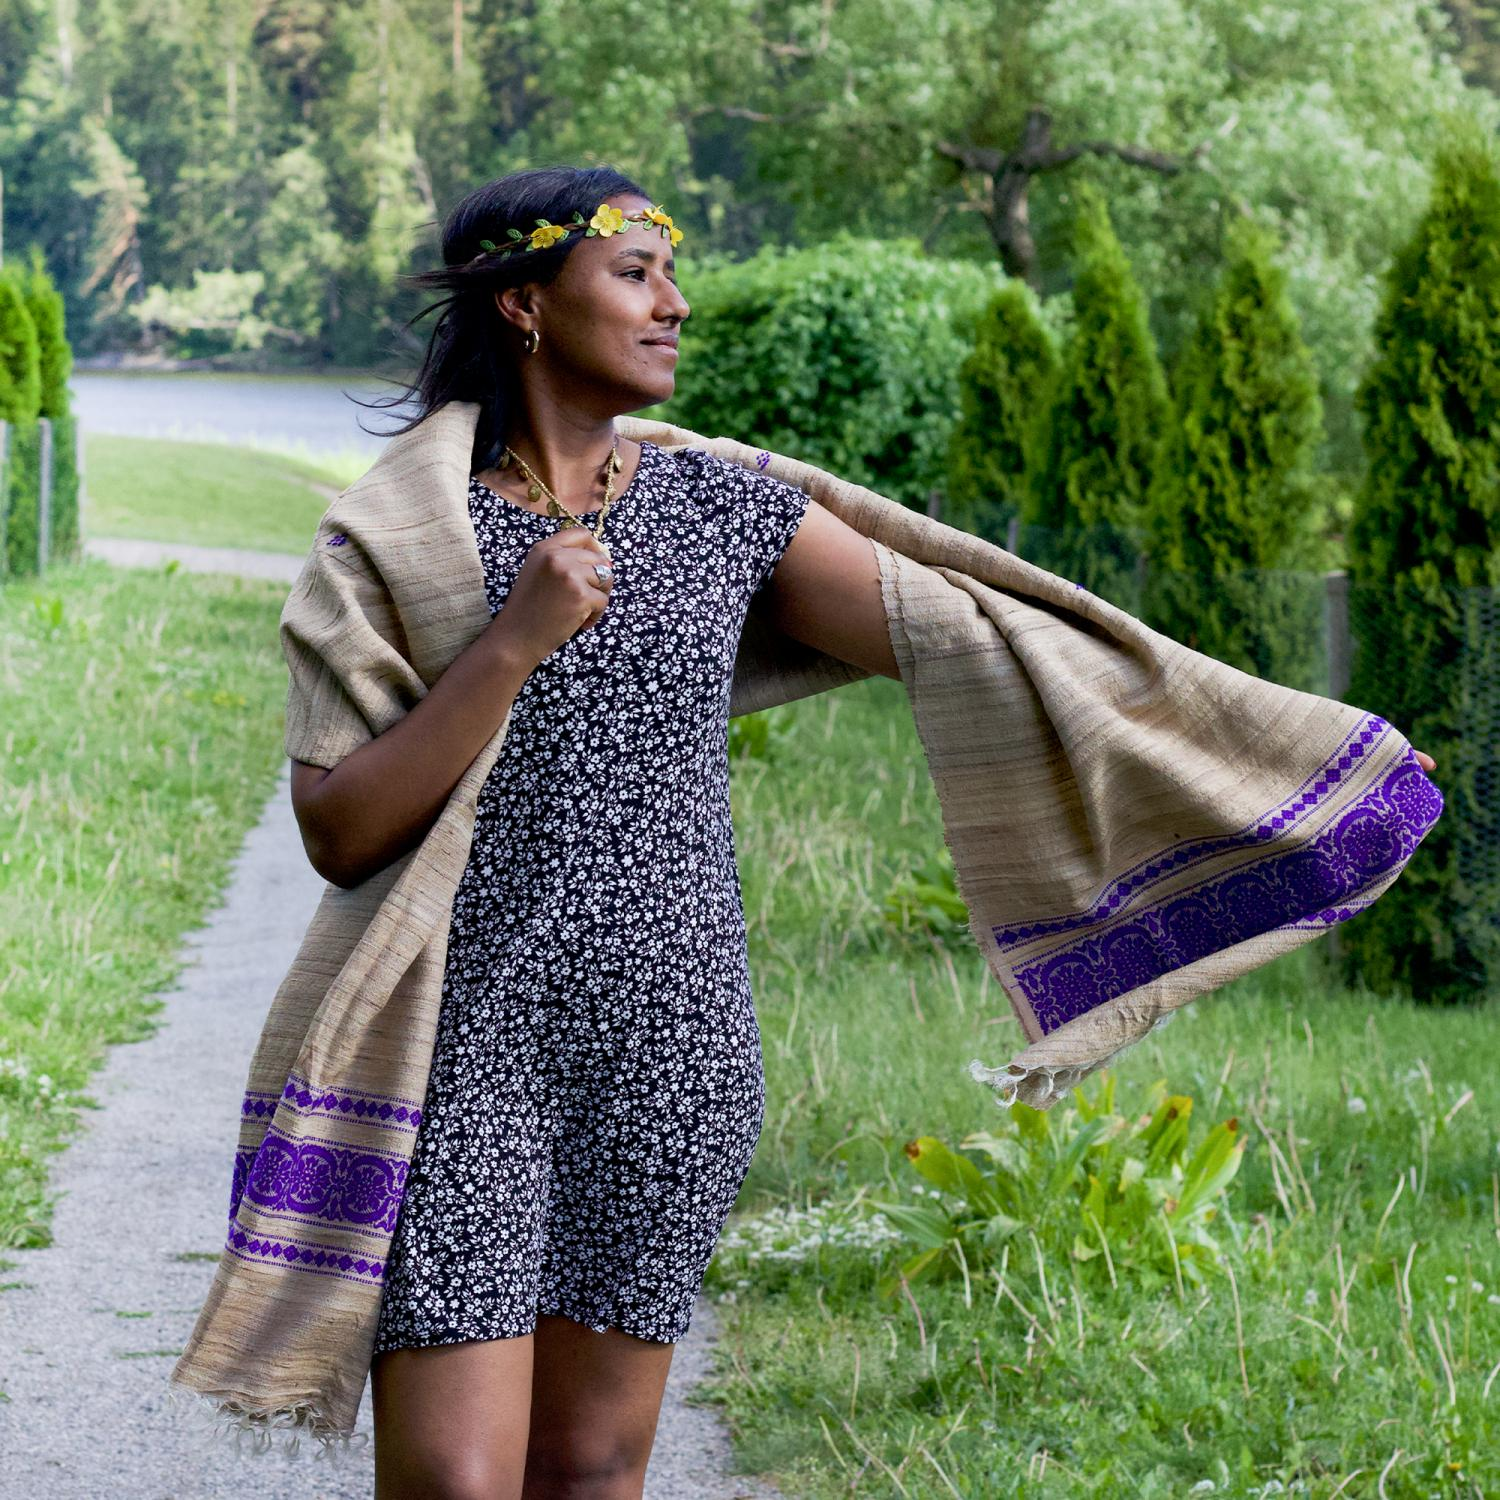 Woman in dark floral dress and shawl with purple pattern edge standing on a path in a park with one arm outspread and the opposite hand holding a necklace